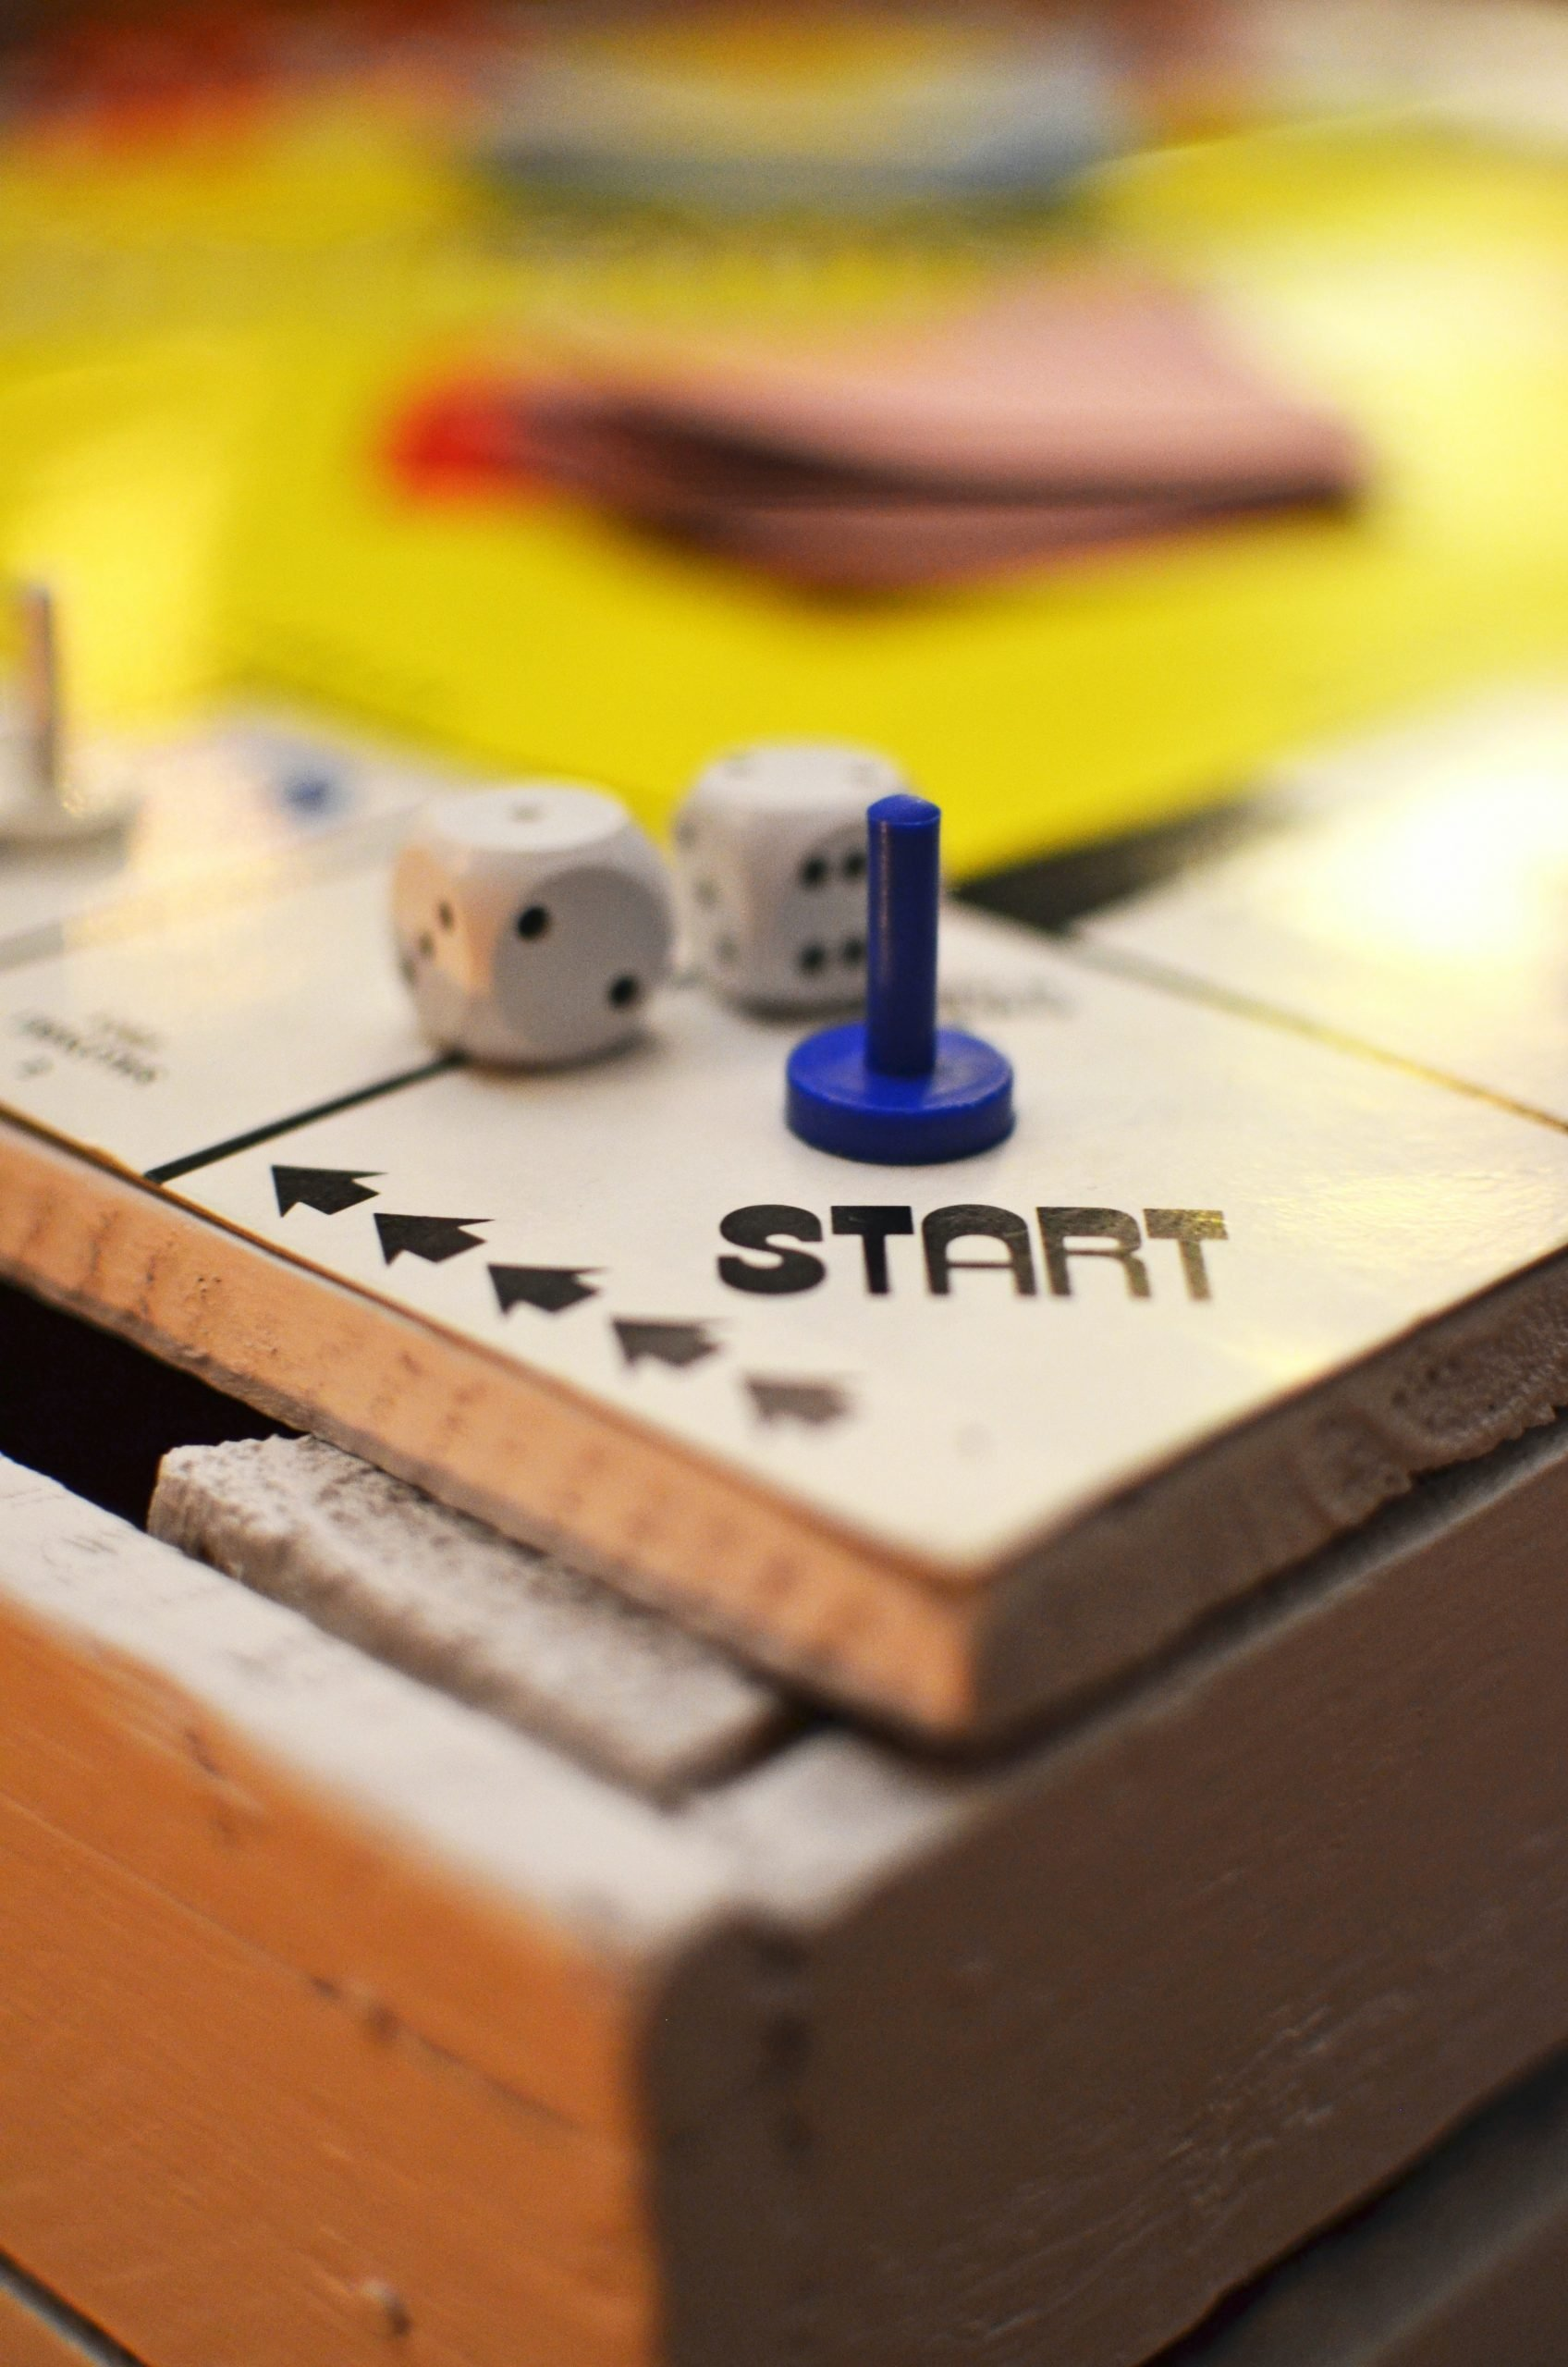 The Best Family Games That Won't Make You Want to Flip The Board #gamenight #familygames #boardgames